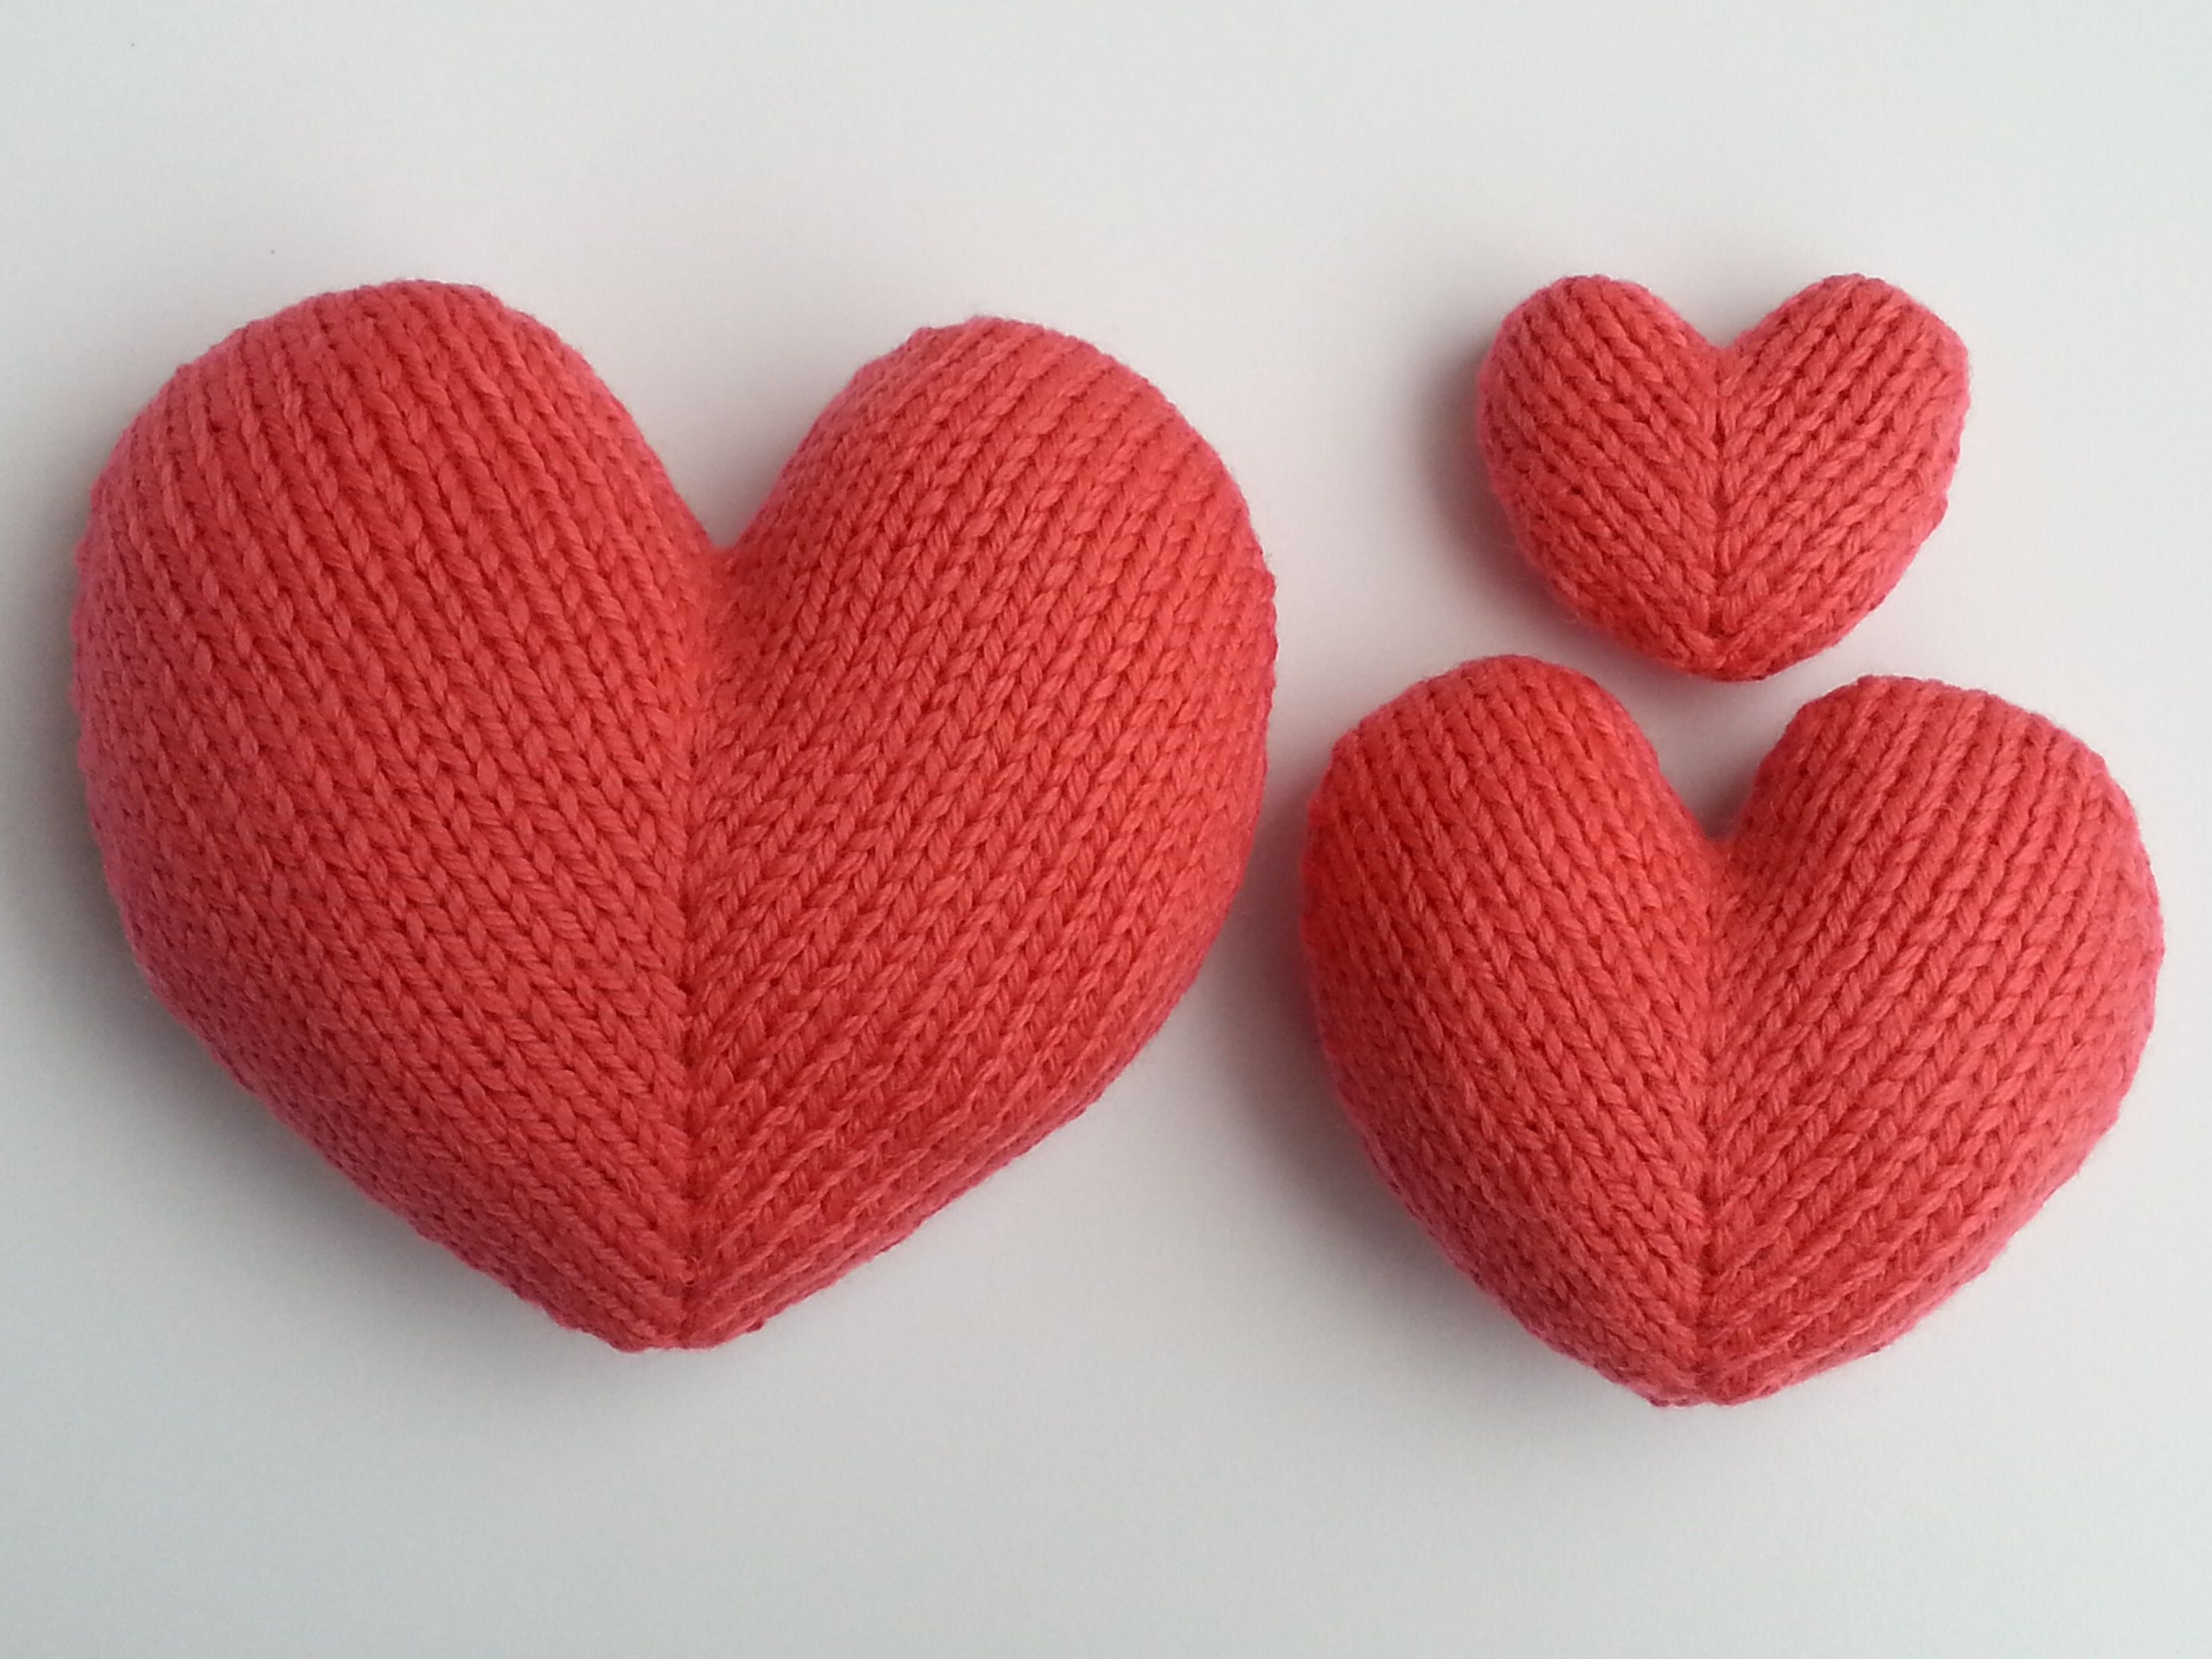 Love Hearts | Knitting patterns, Patterns and Anniversary gifts